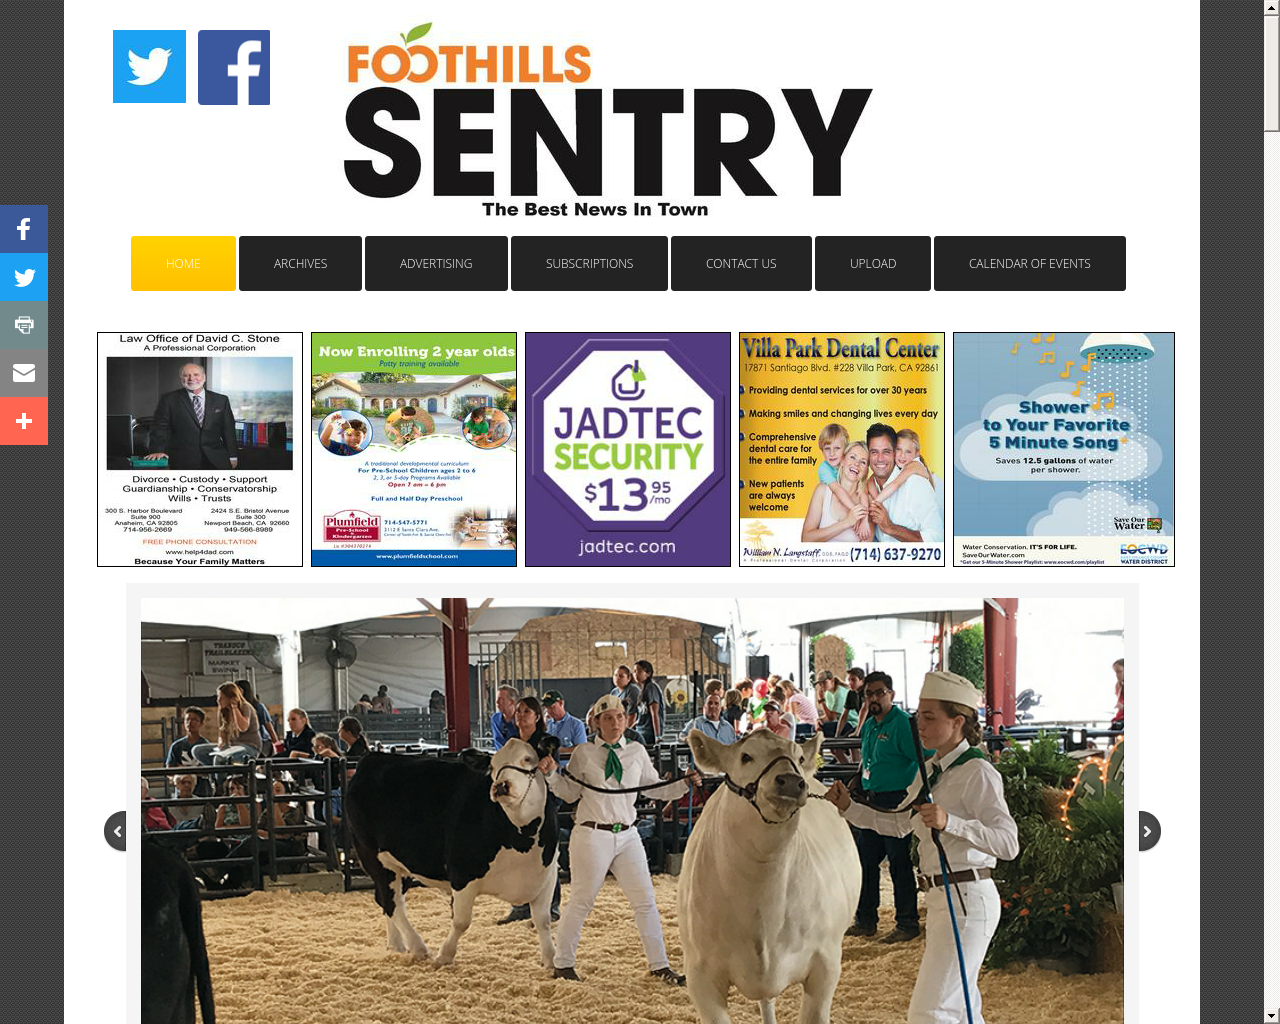 Foothills-Sentry-Advertising-Reviews-Pricing